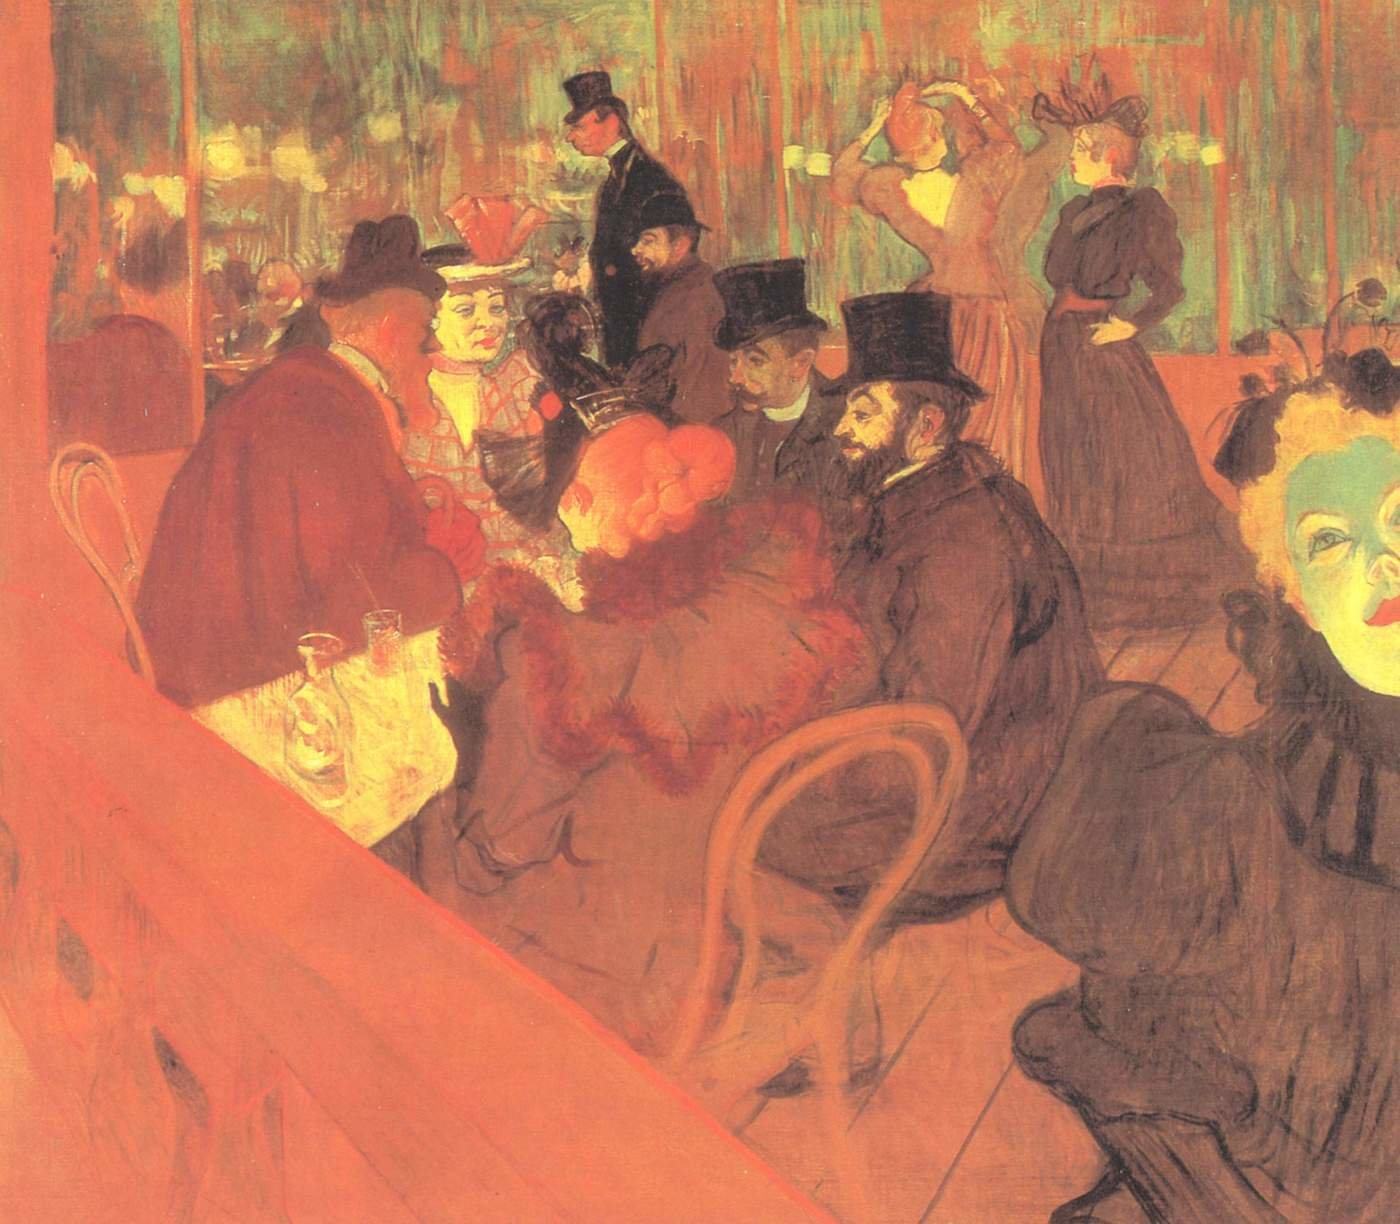 Henri De Toulouse-Lautrec background